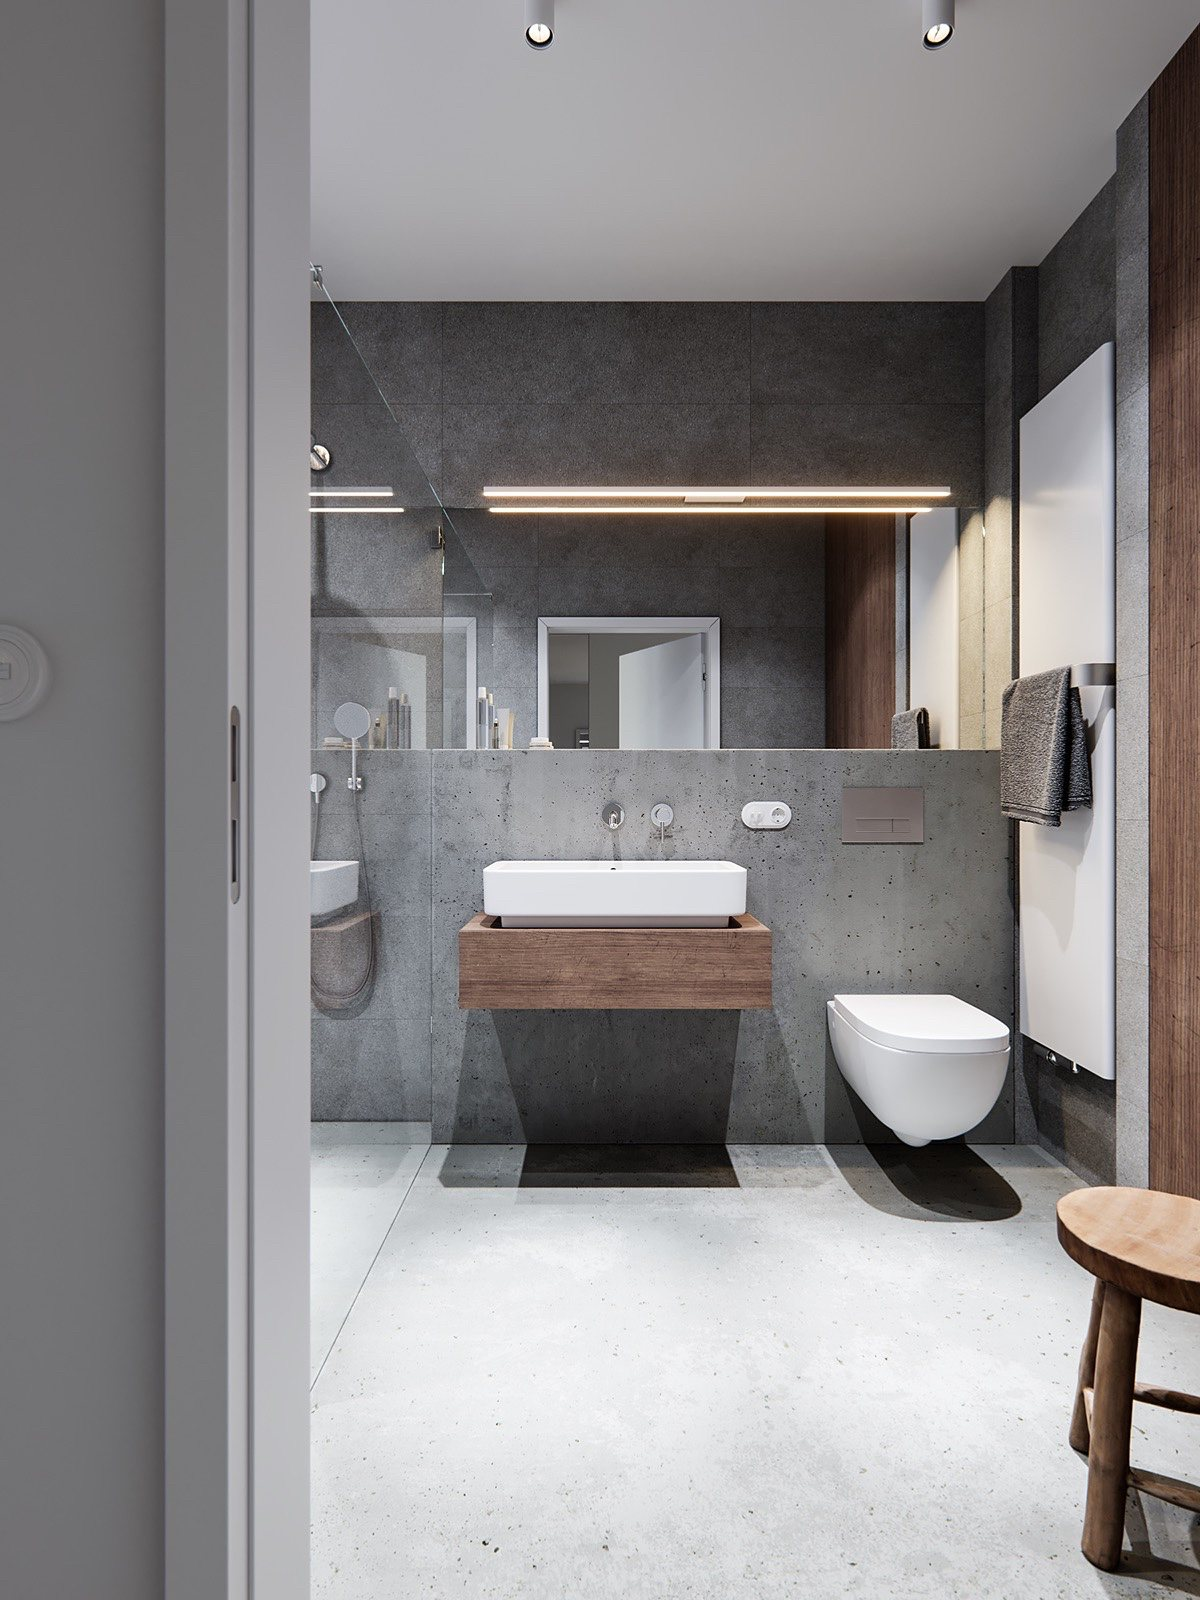 Concrete And Wood Bathroom Design - A pair of stylish apartments that put their extra rooms to good use